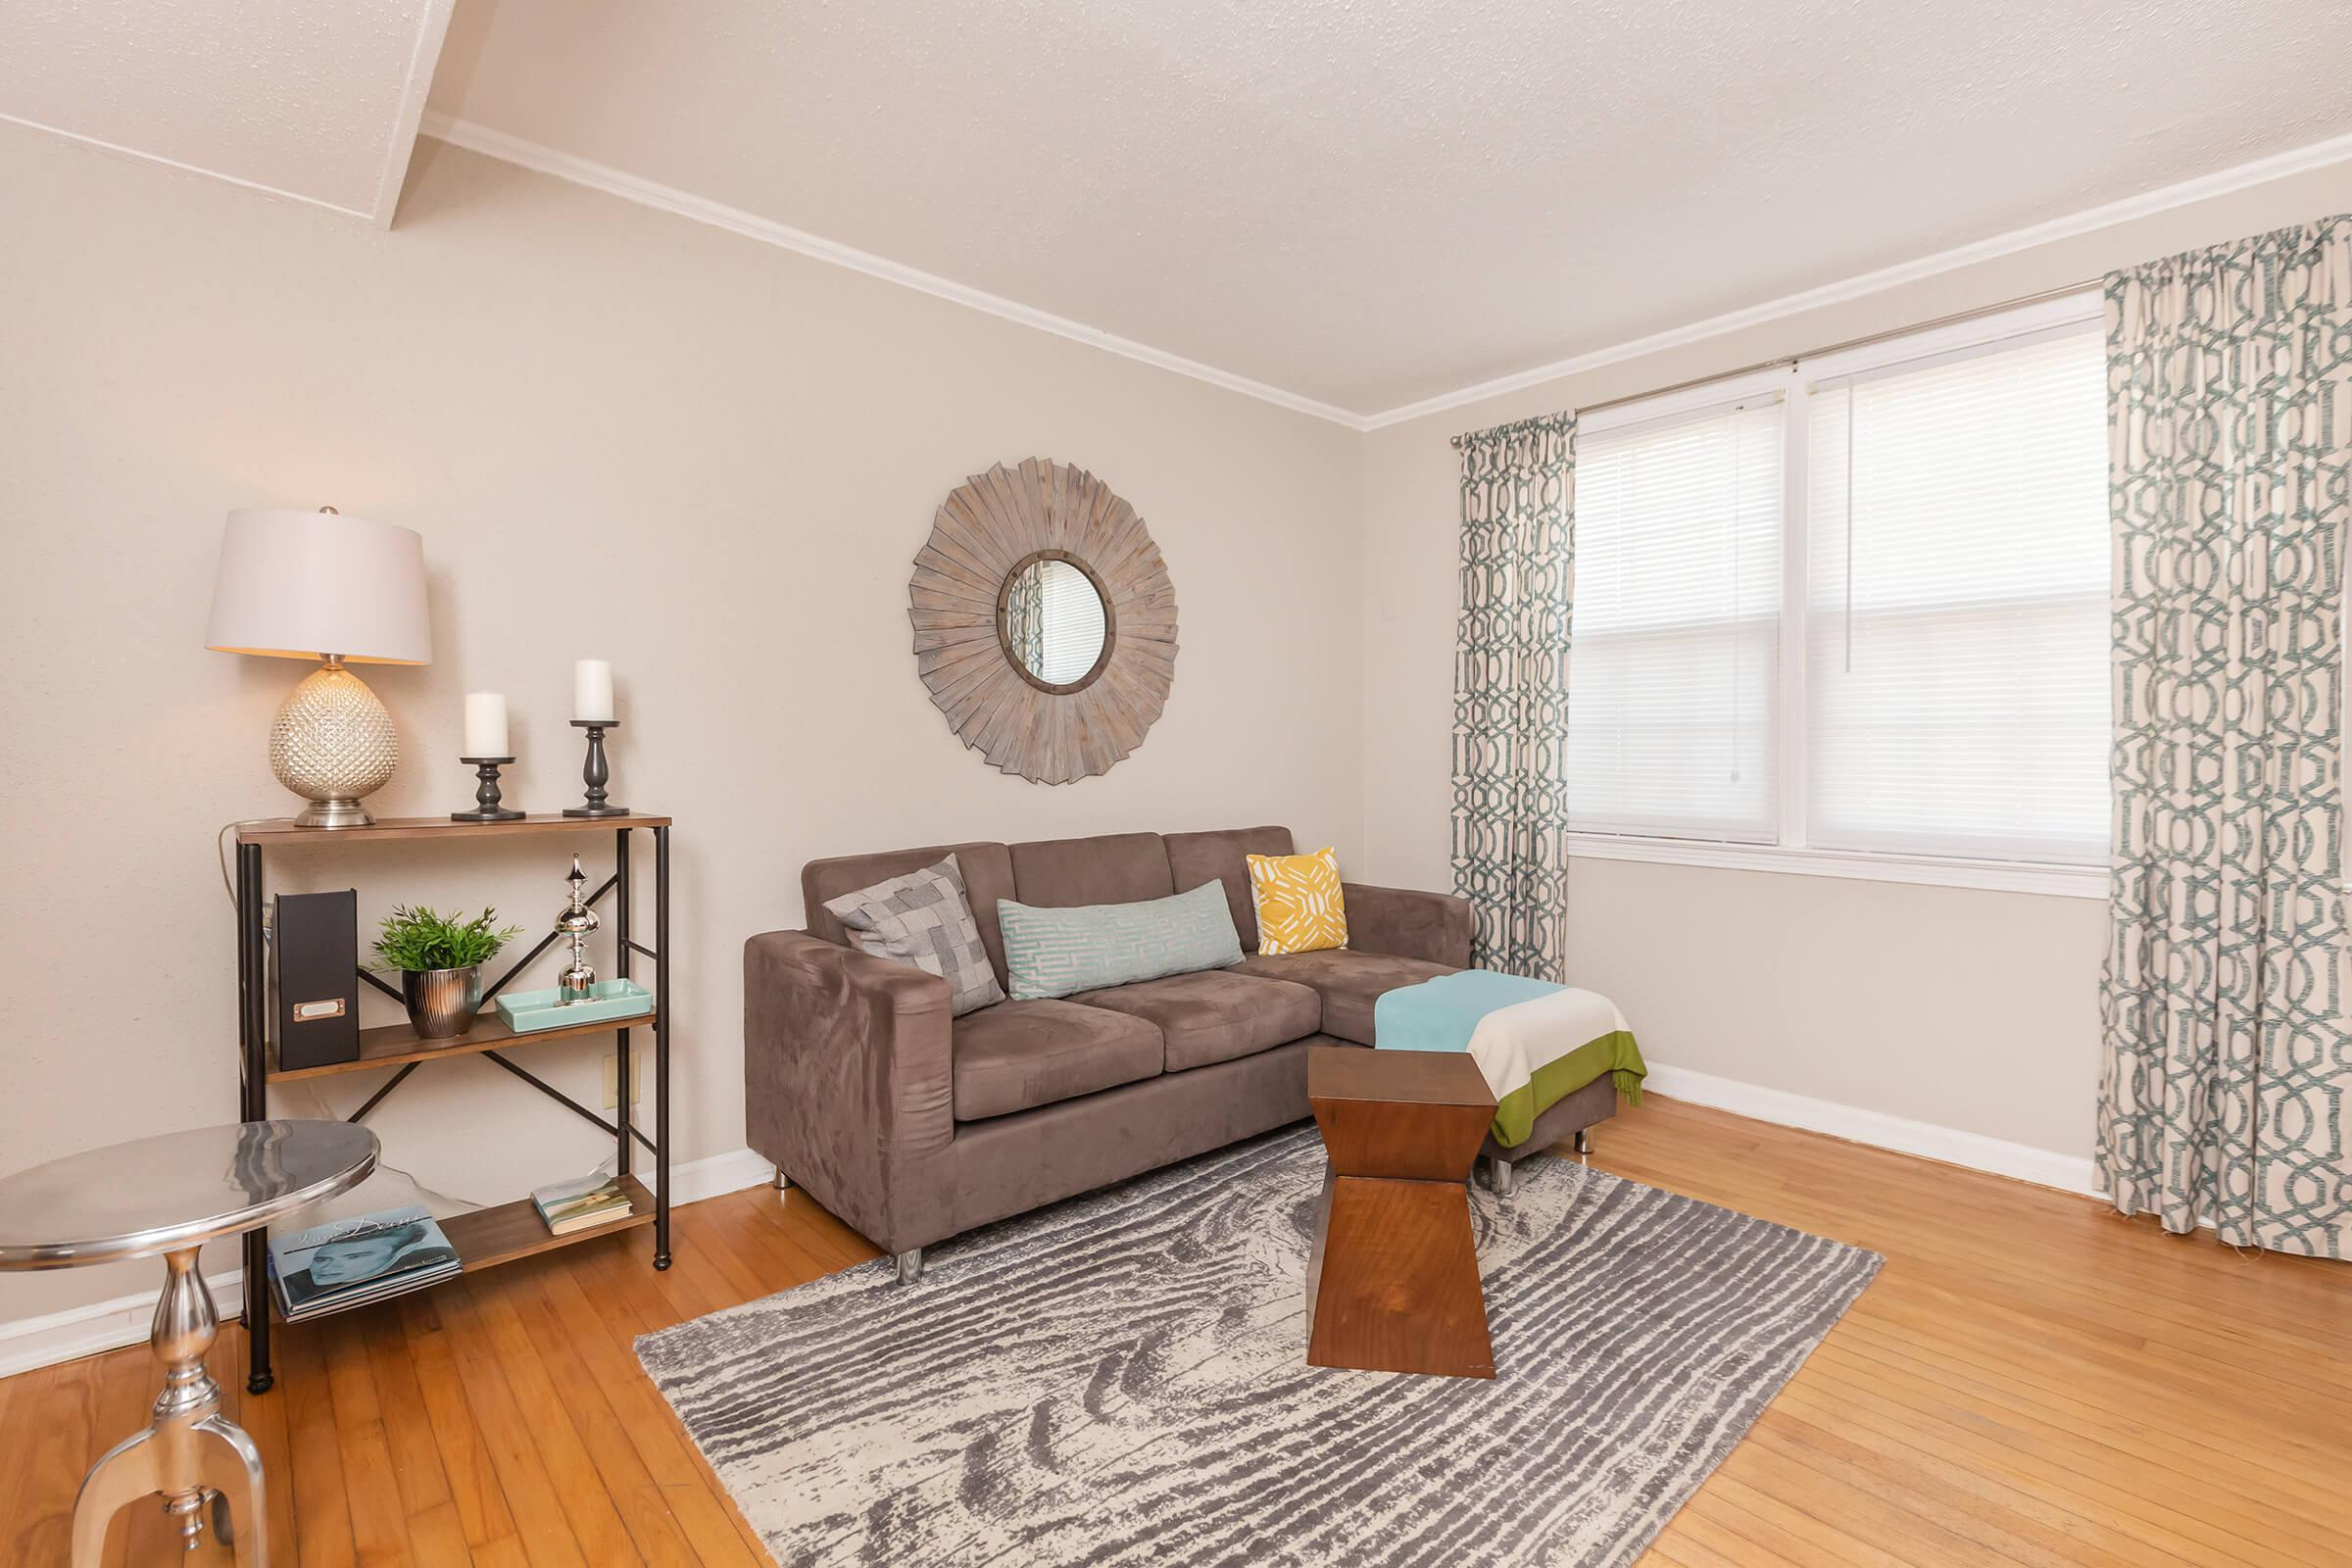 a living room filled with furniture and a large window